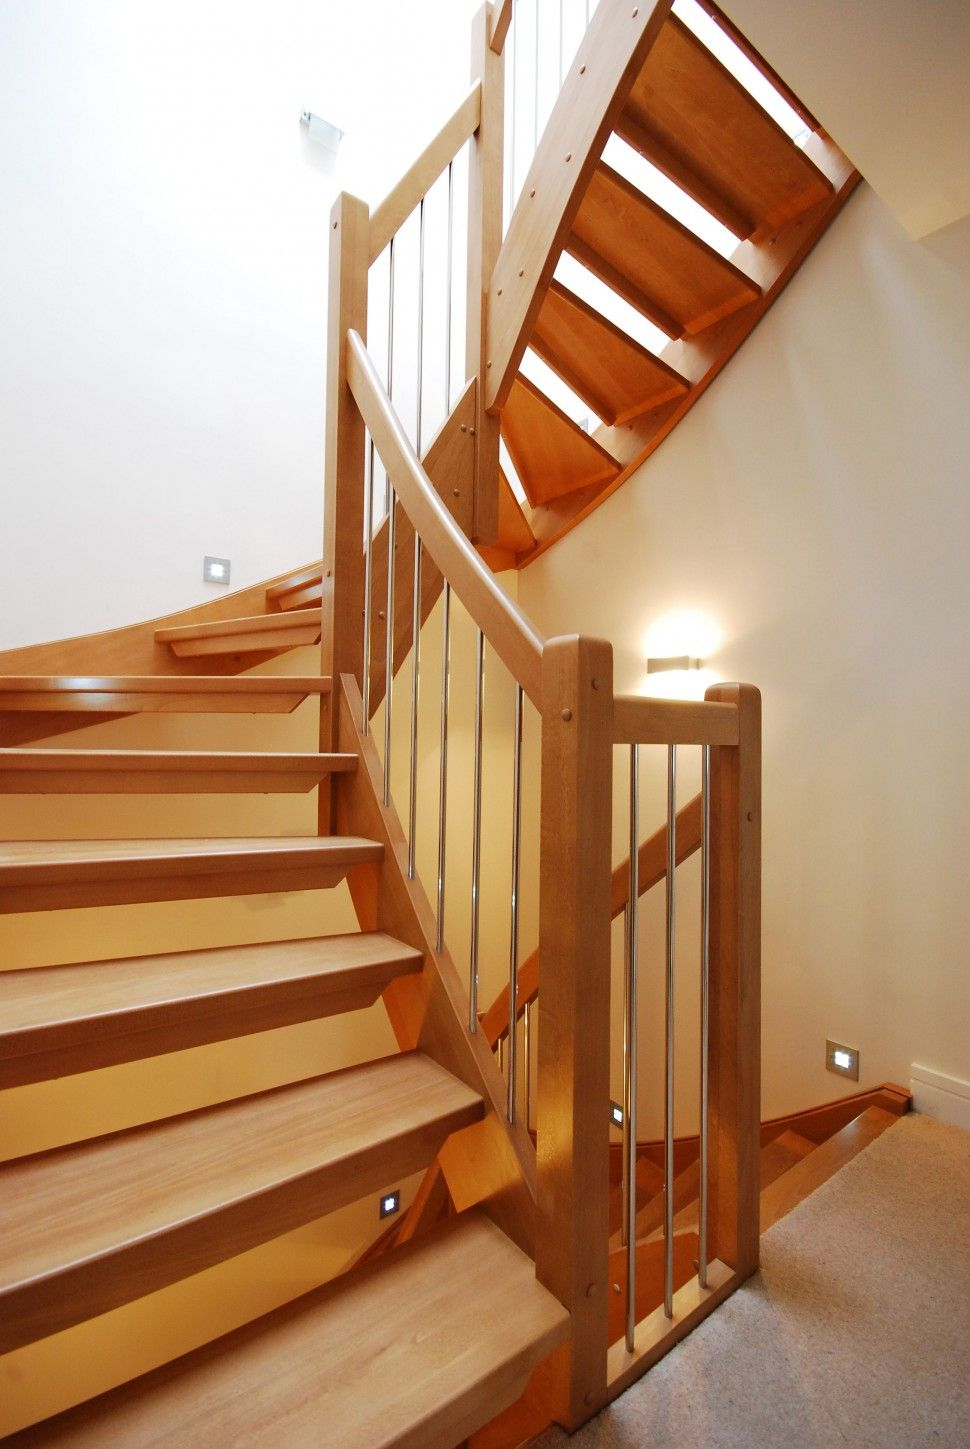 Best Wooden Handrail For Stairs For Classic Look Handrail 640 x 480